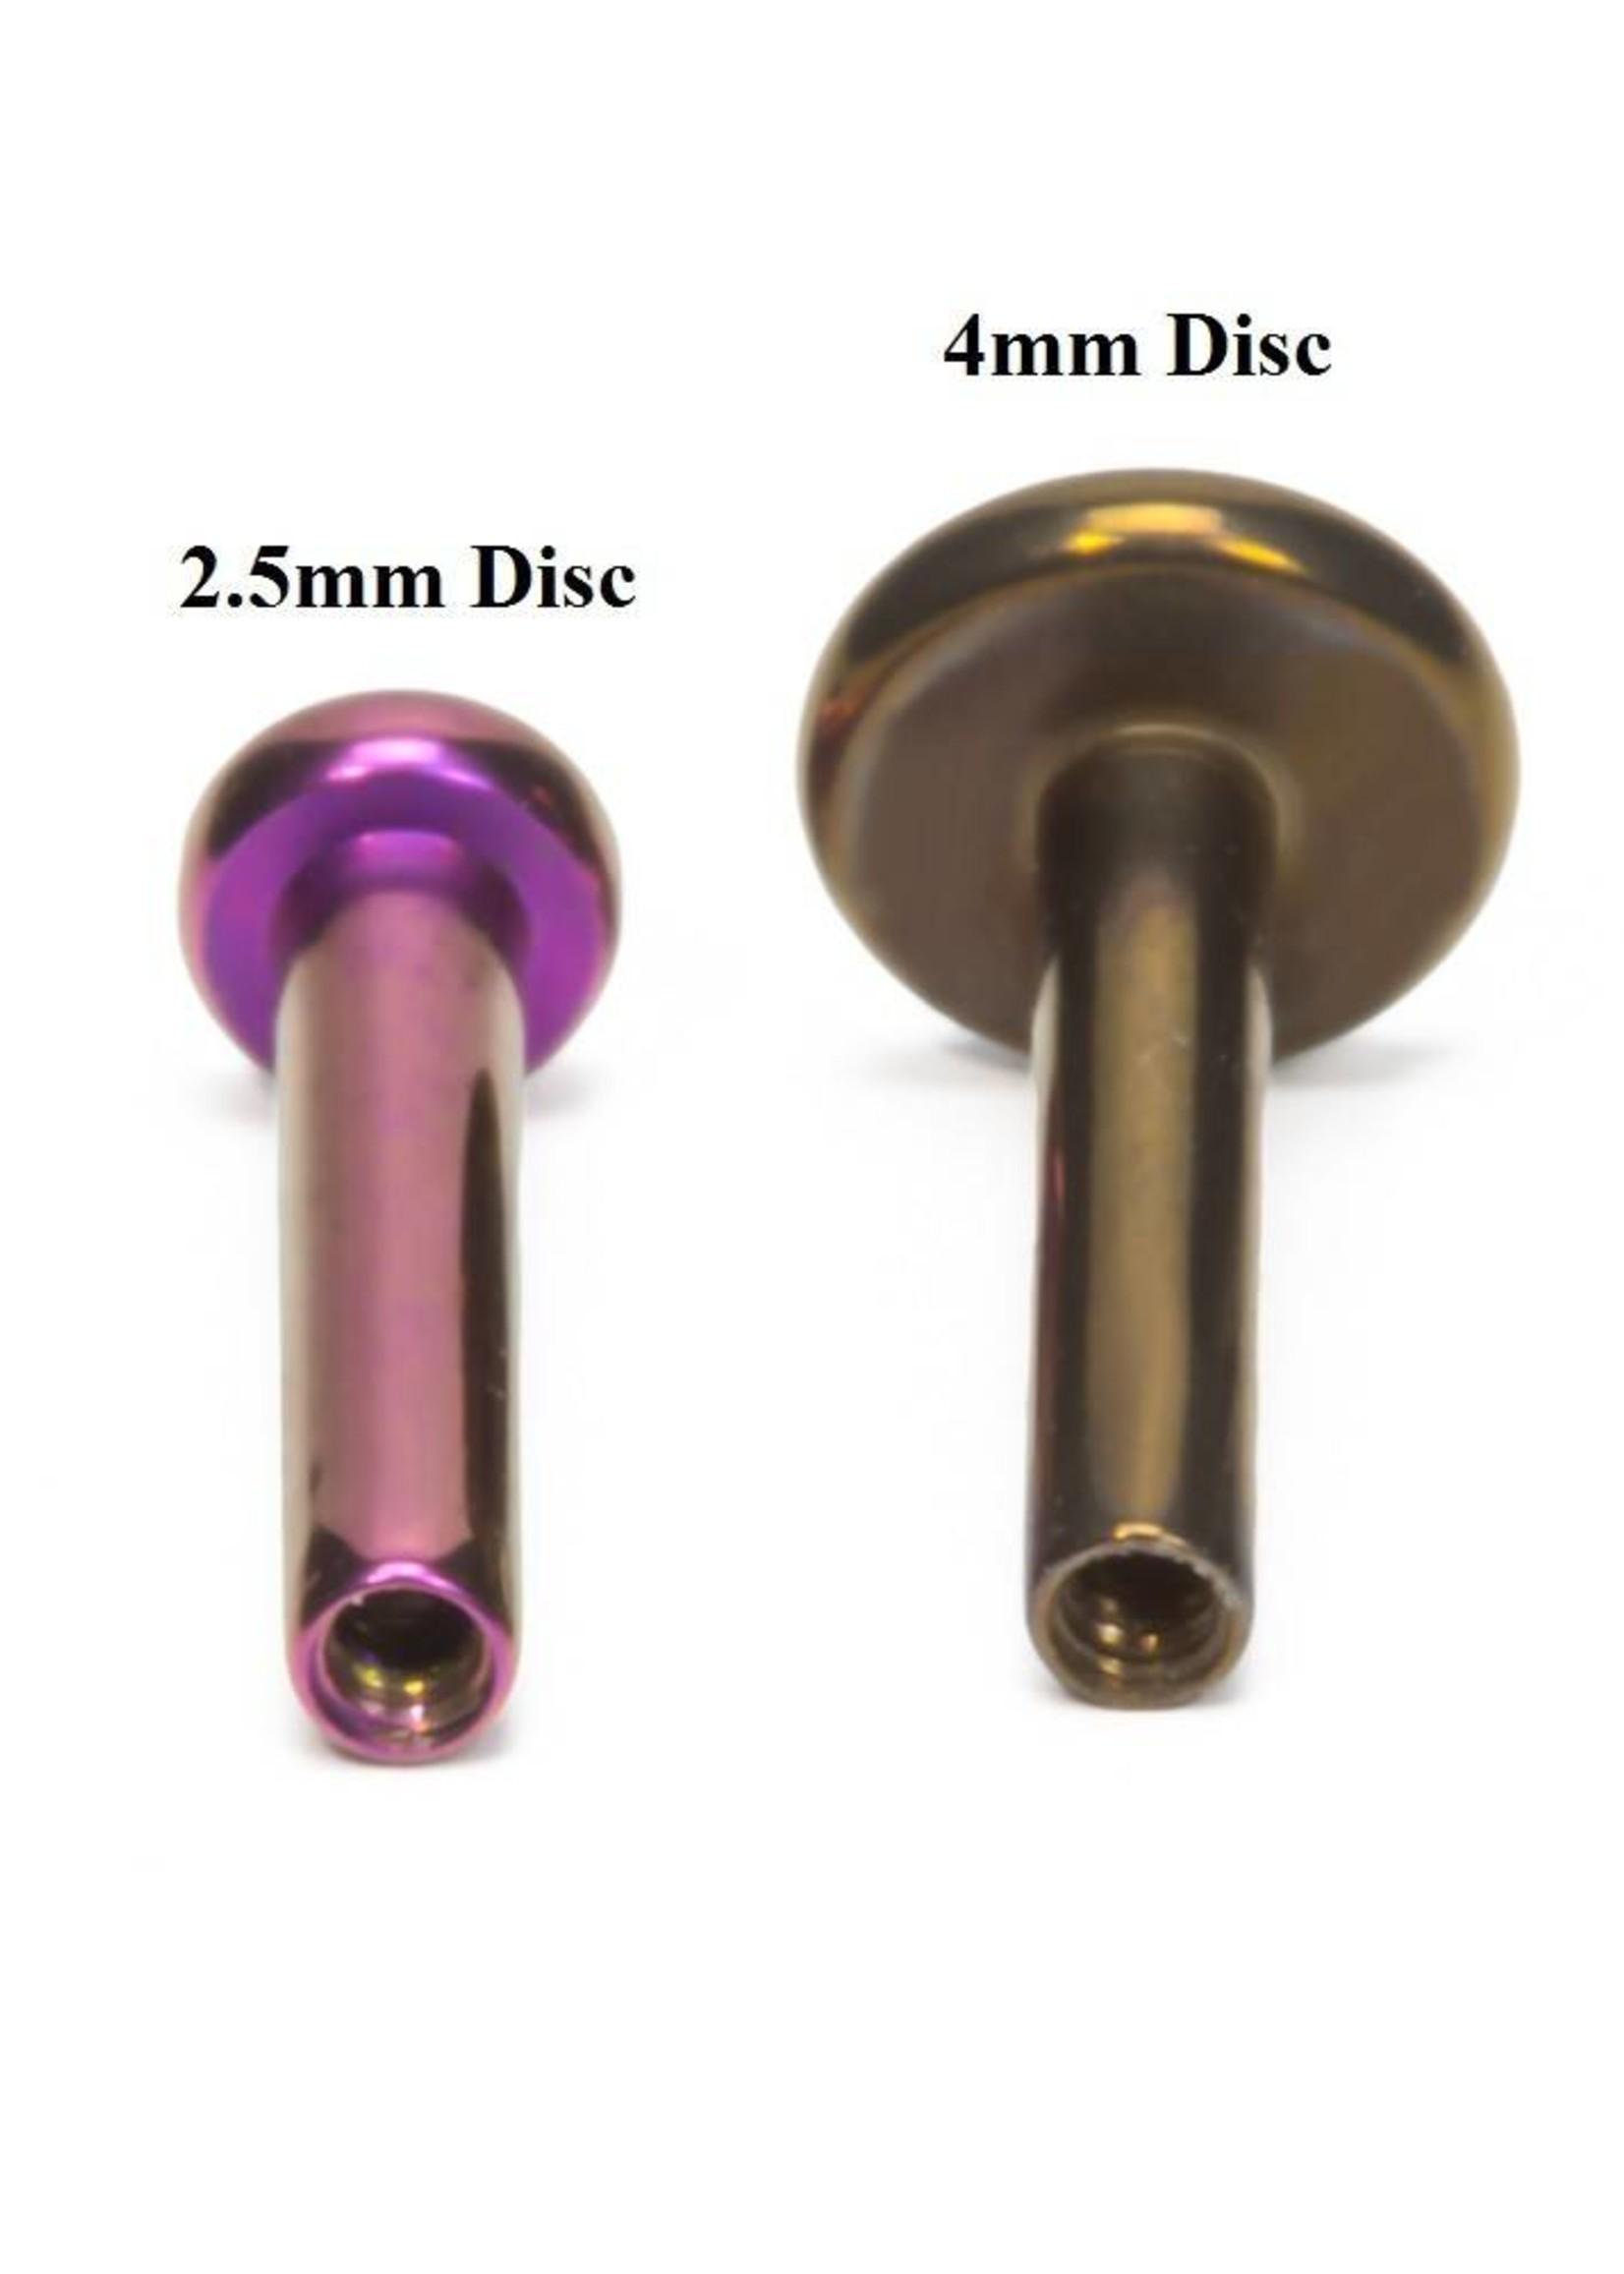 18g Titanium Internally Threaded Flat Back Post (2.5mm Disk)